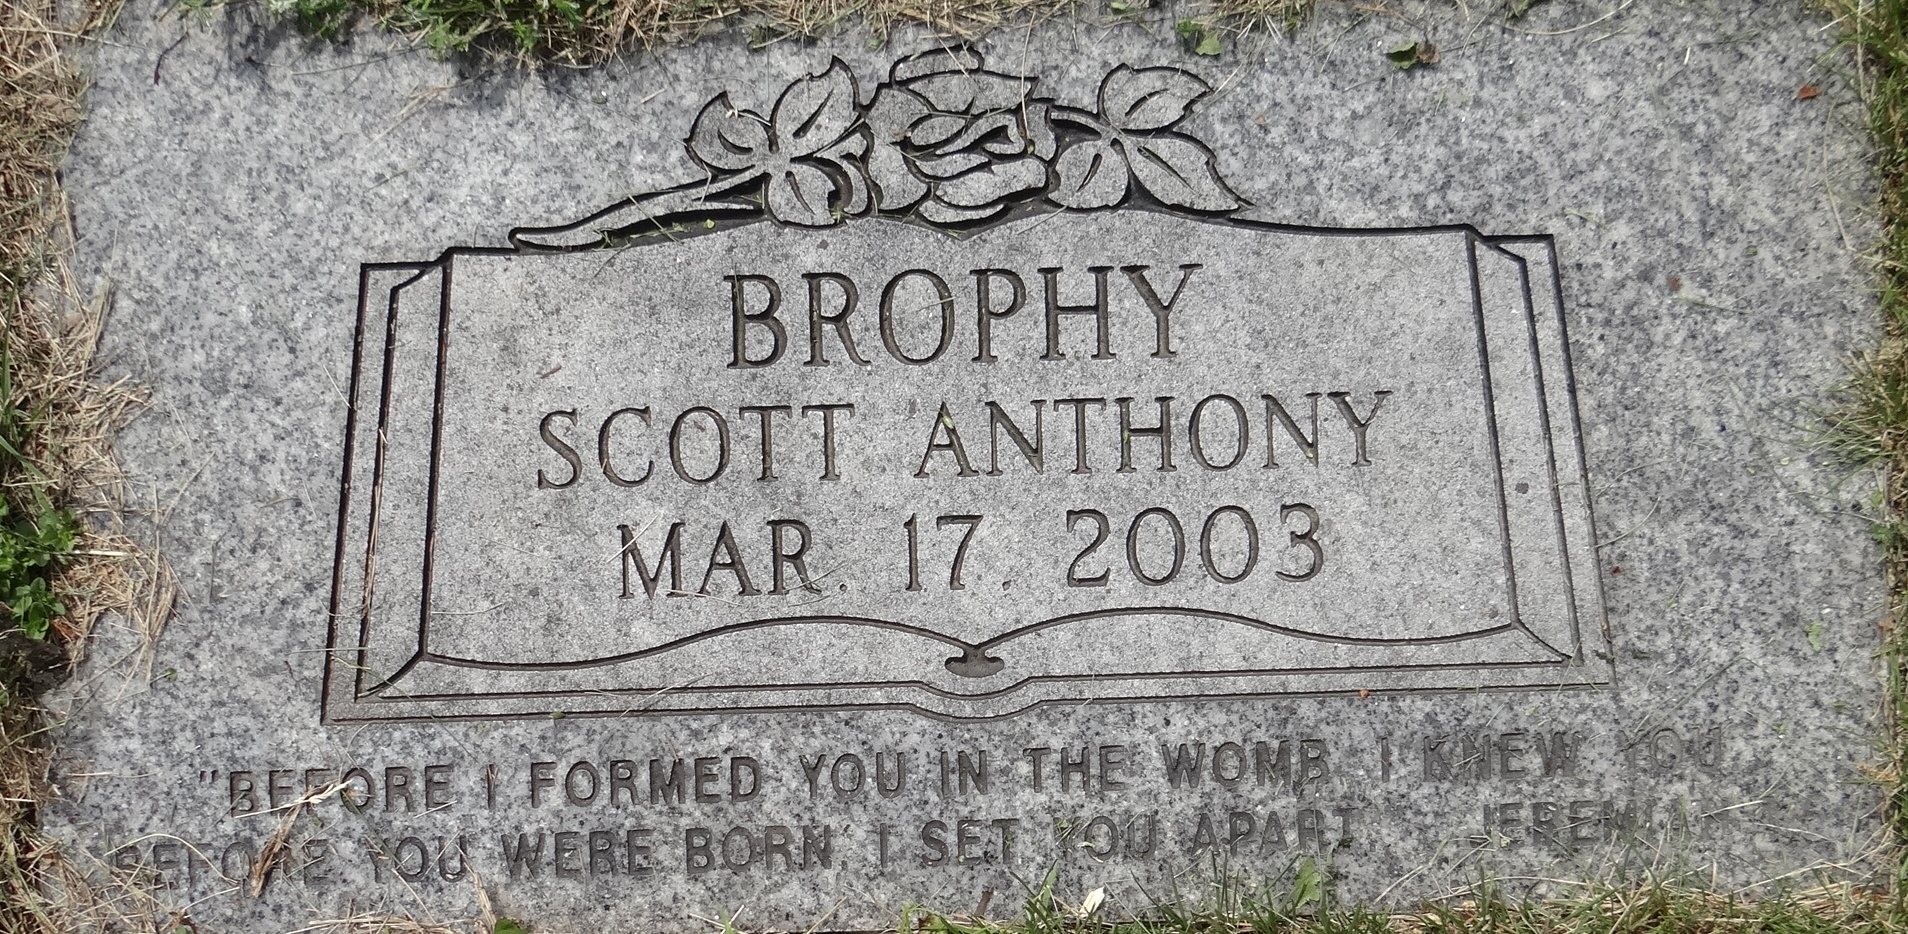 Scott Anthony Brophy